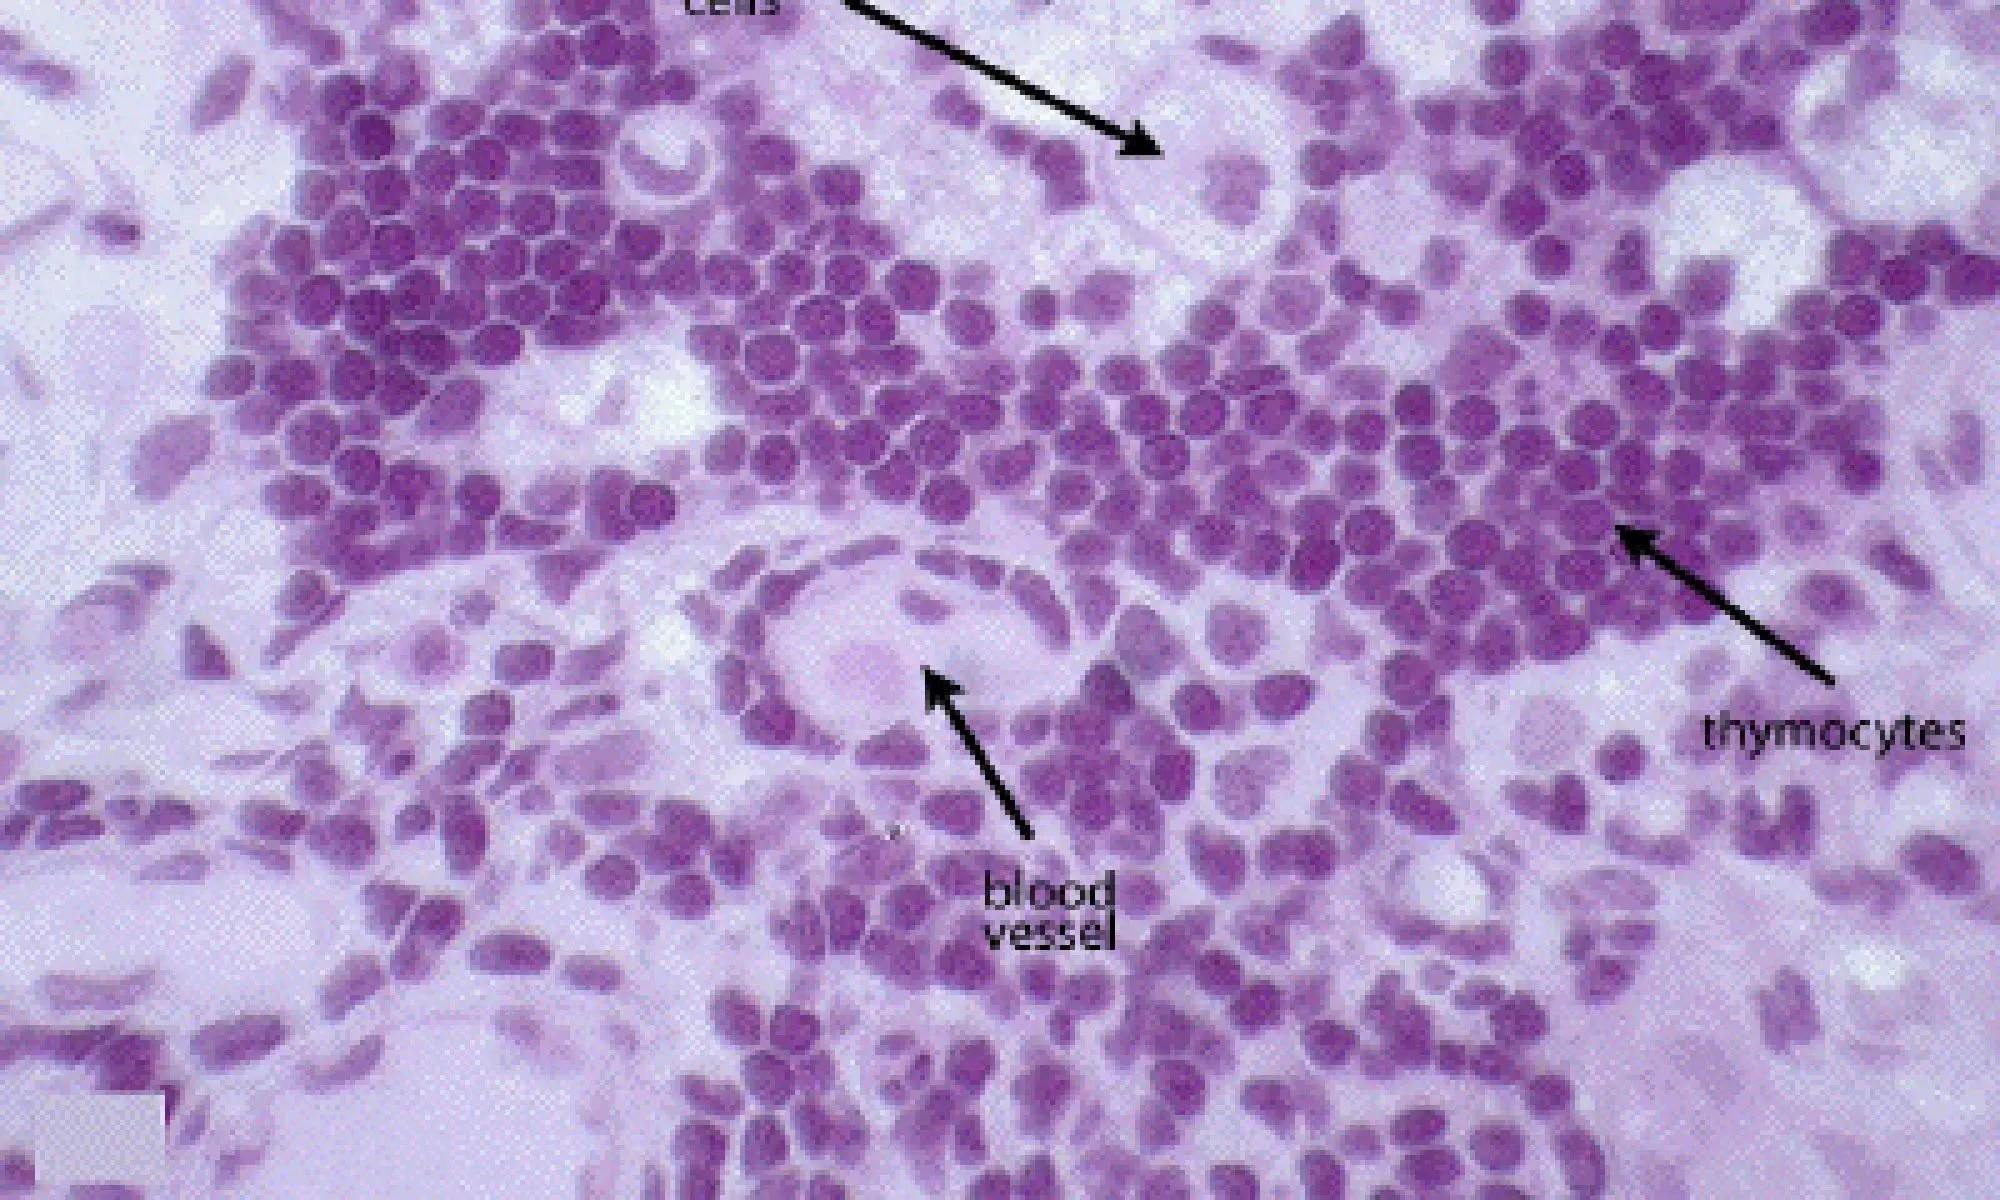 image of thymocytes